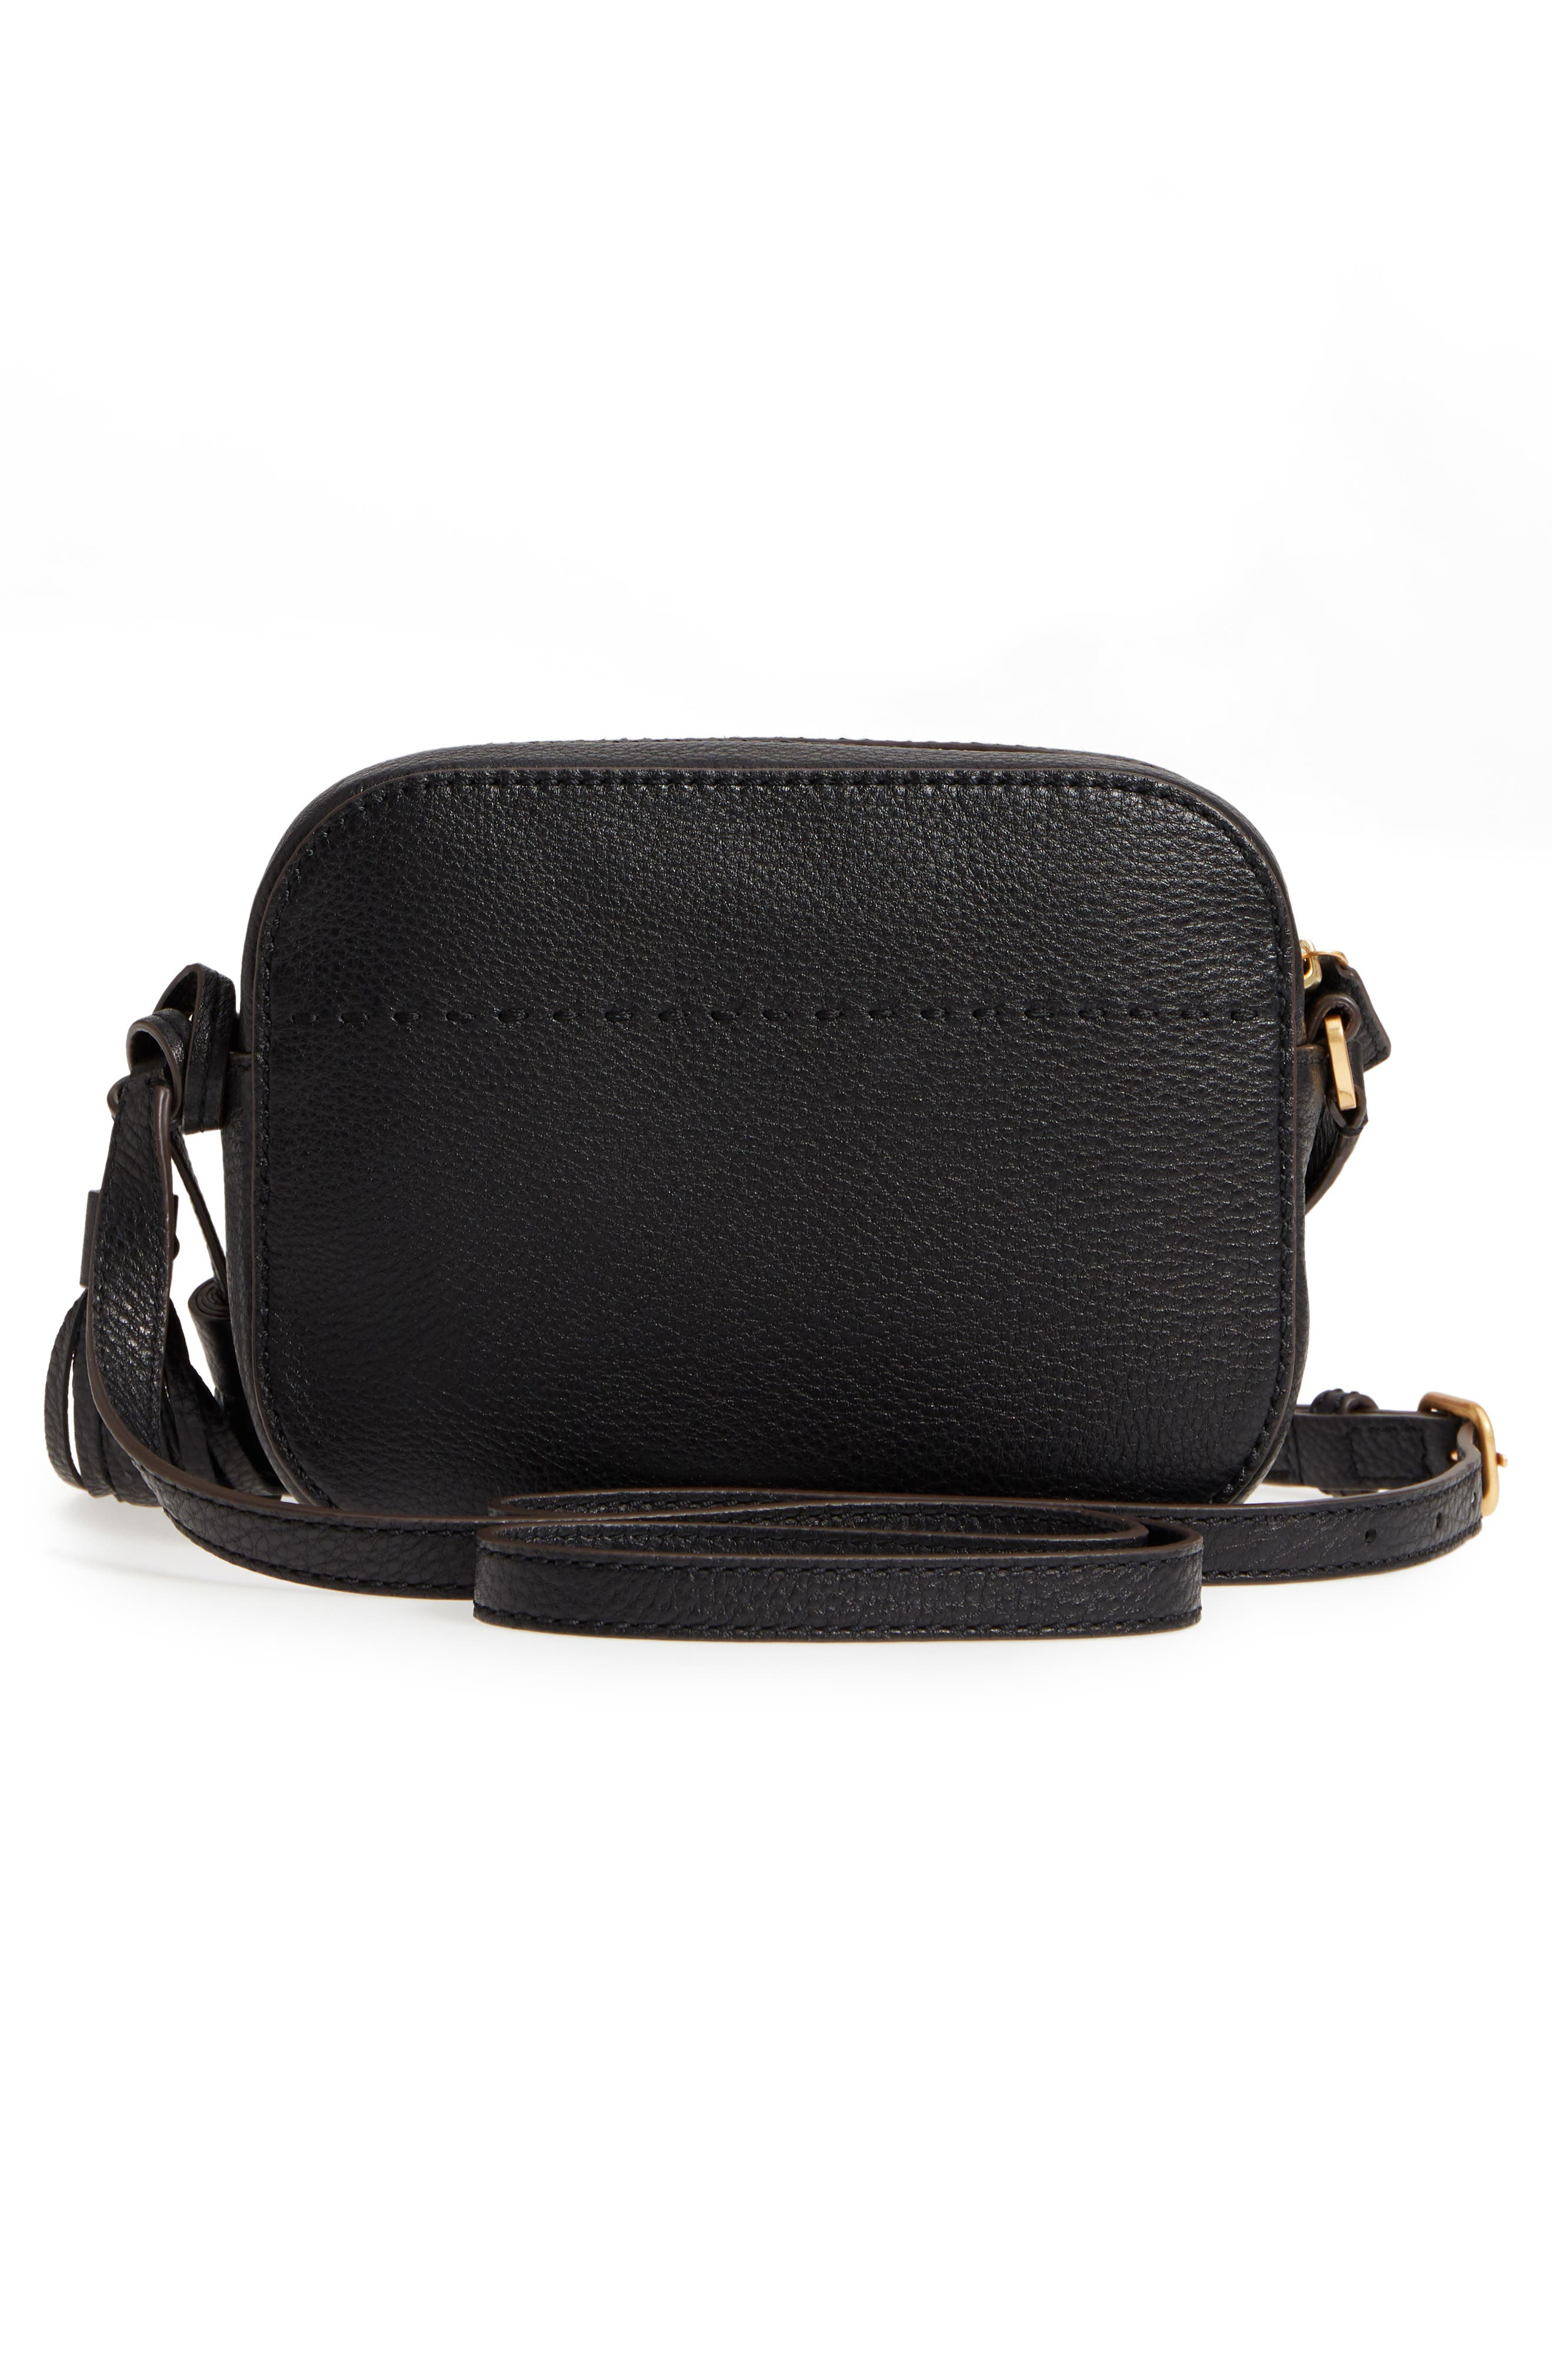 McGraw Leather Camera Bag,                             Alternate thumbnail 3, color,                             001